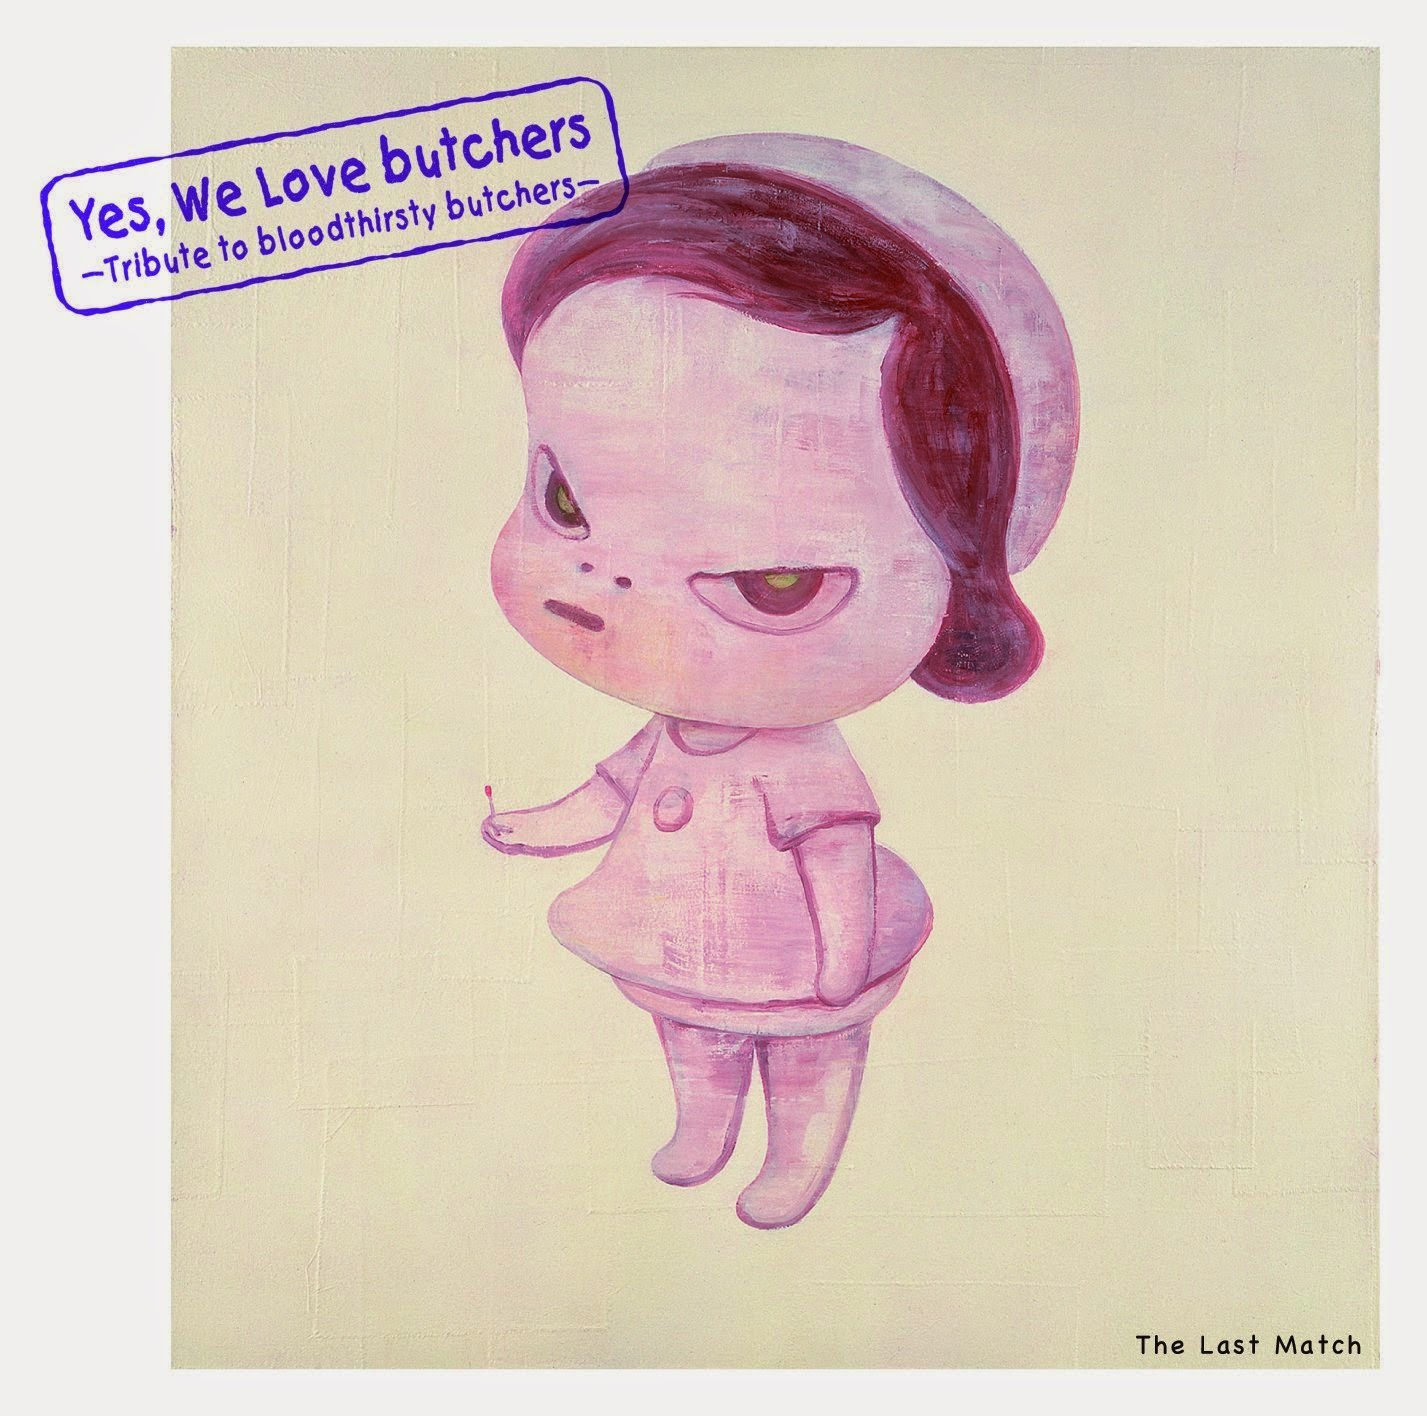 Tribute AlbumYes, We Love butchers ~Tribute to bloodthirsty butchers~ The Last Match